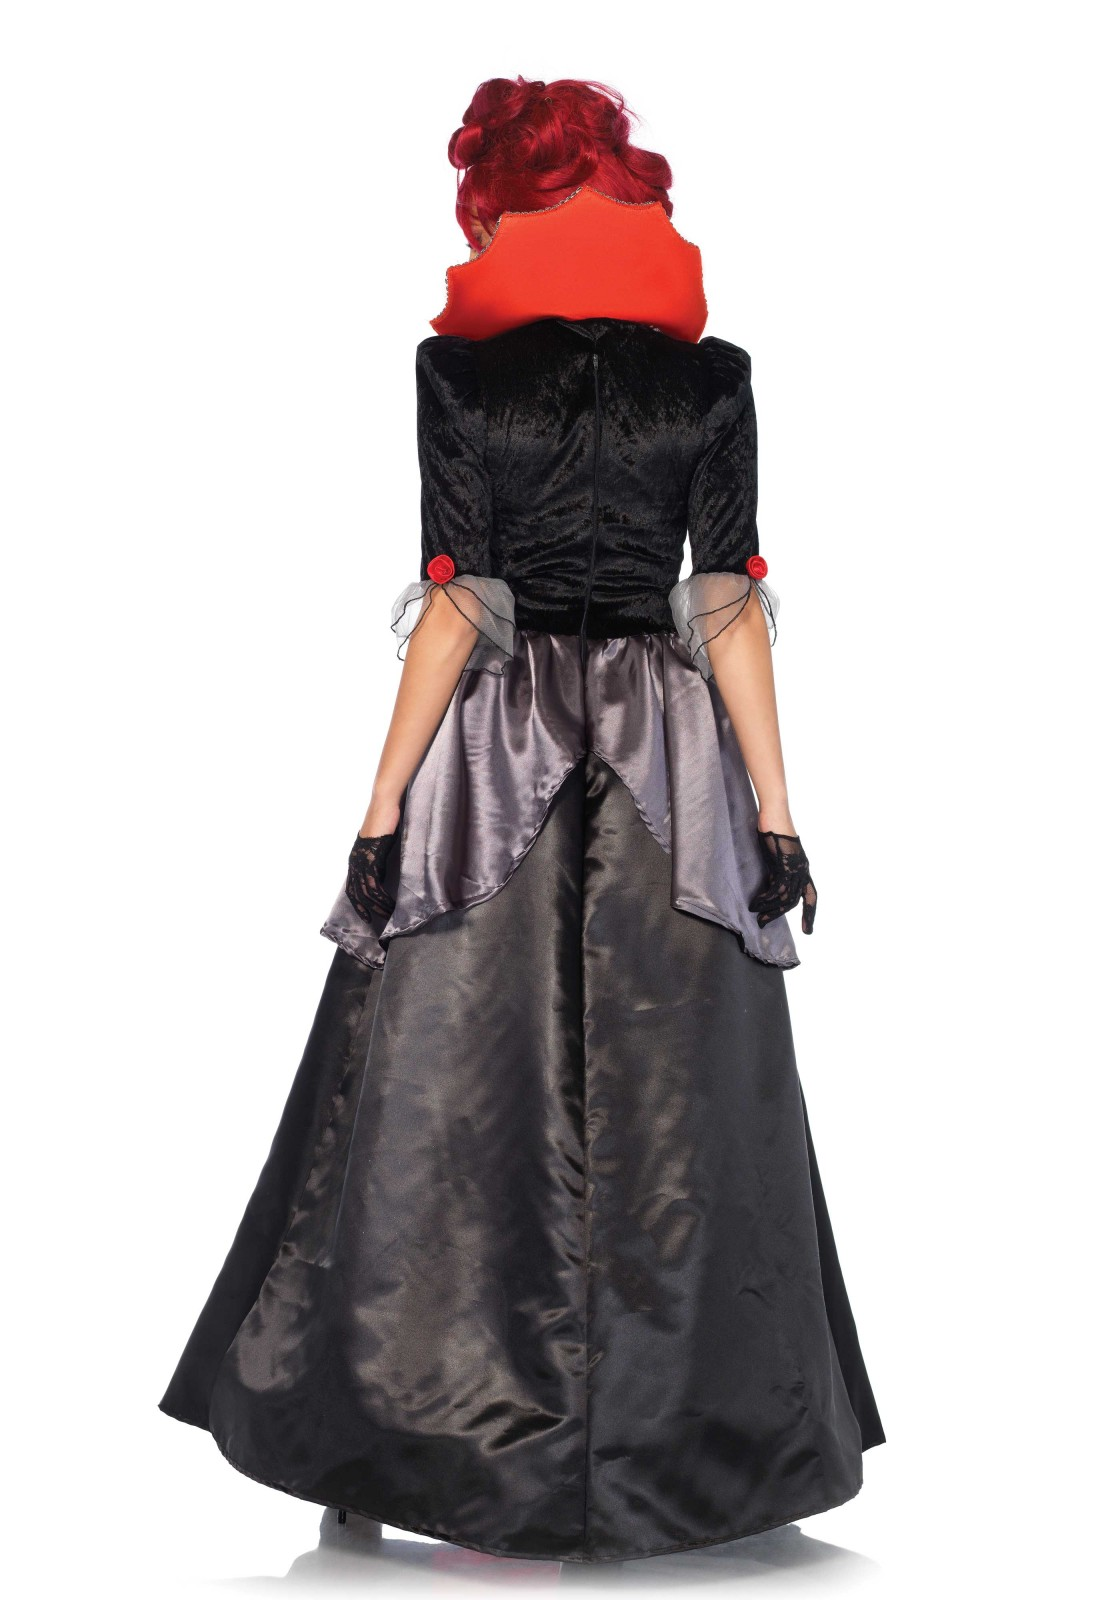 2 PC. Blood Countess costume set, includes satin and lace Victorian ...